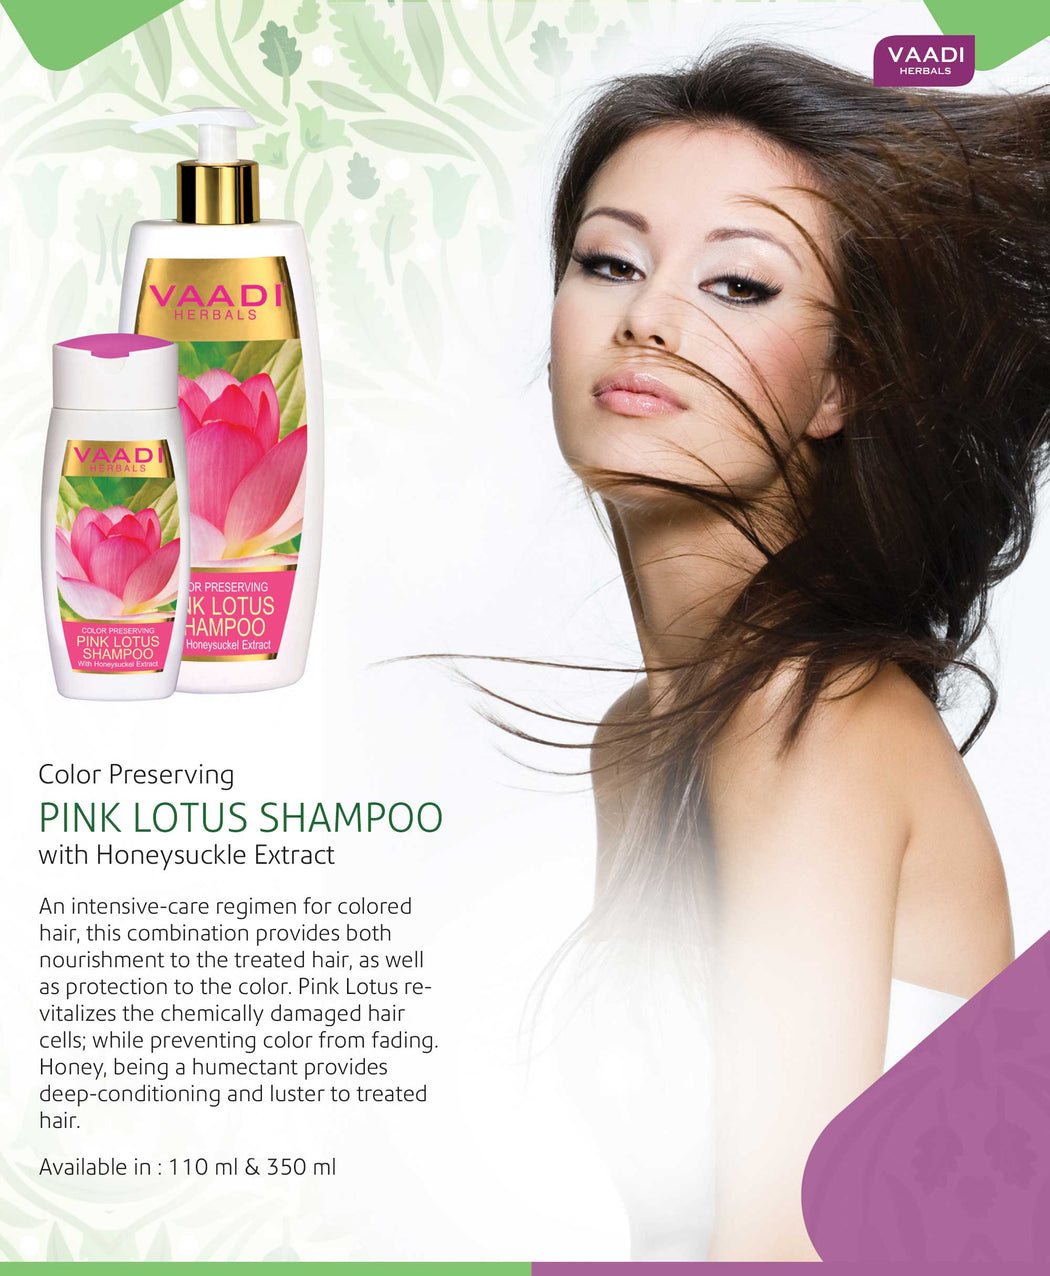 Color Preserving Organic Pink Lotus Shampoo with Honeysuckle Extract - Nourishes Treated Hair - Moisturizes Hair (110ml / 4 fl oz)